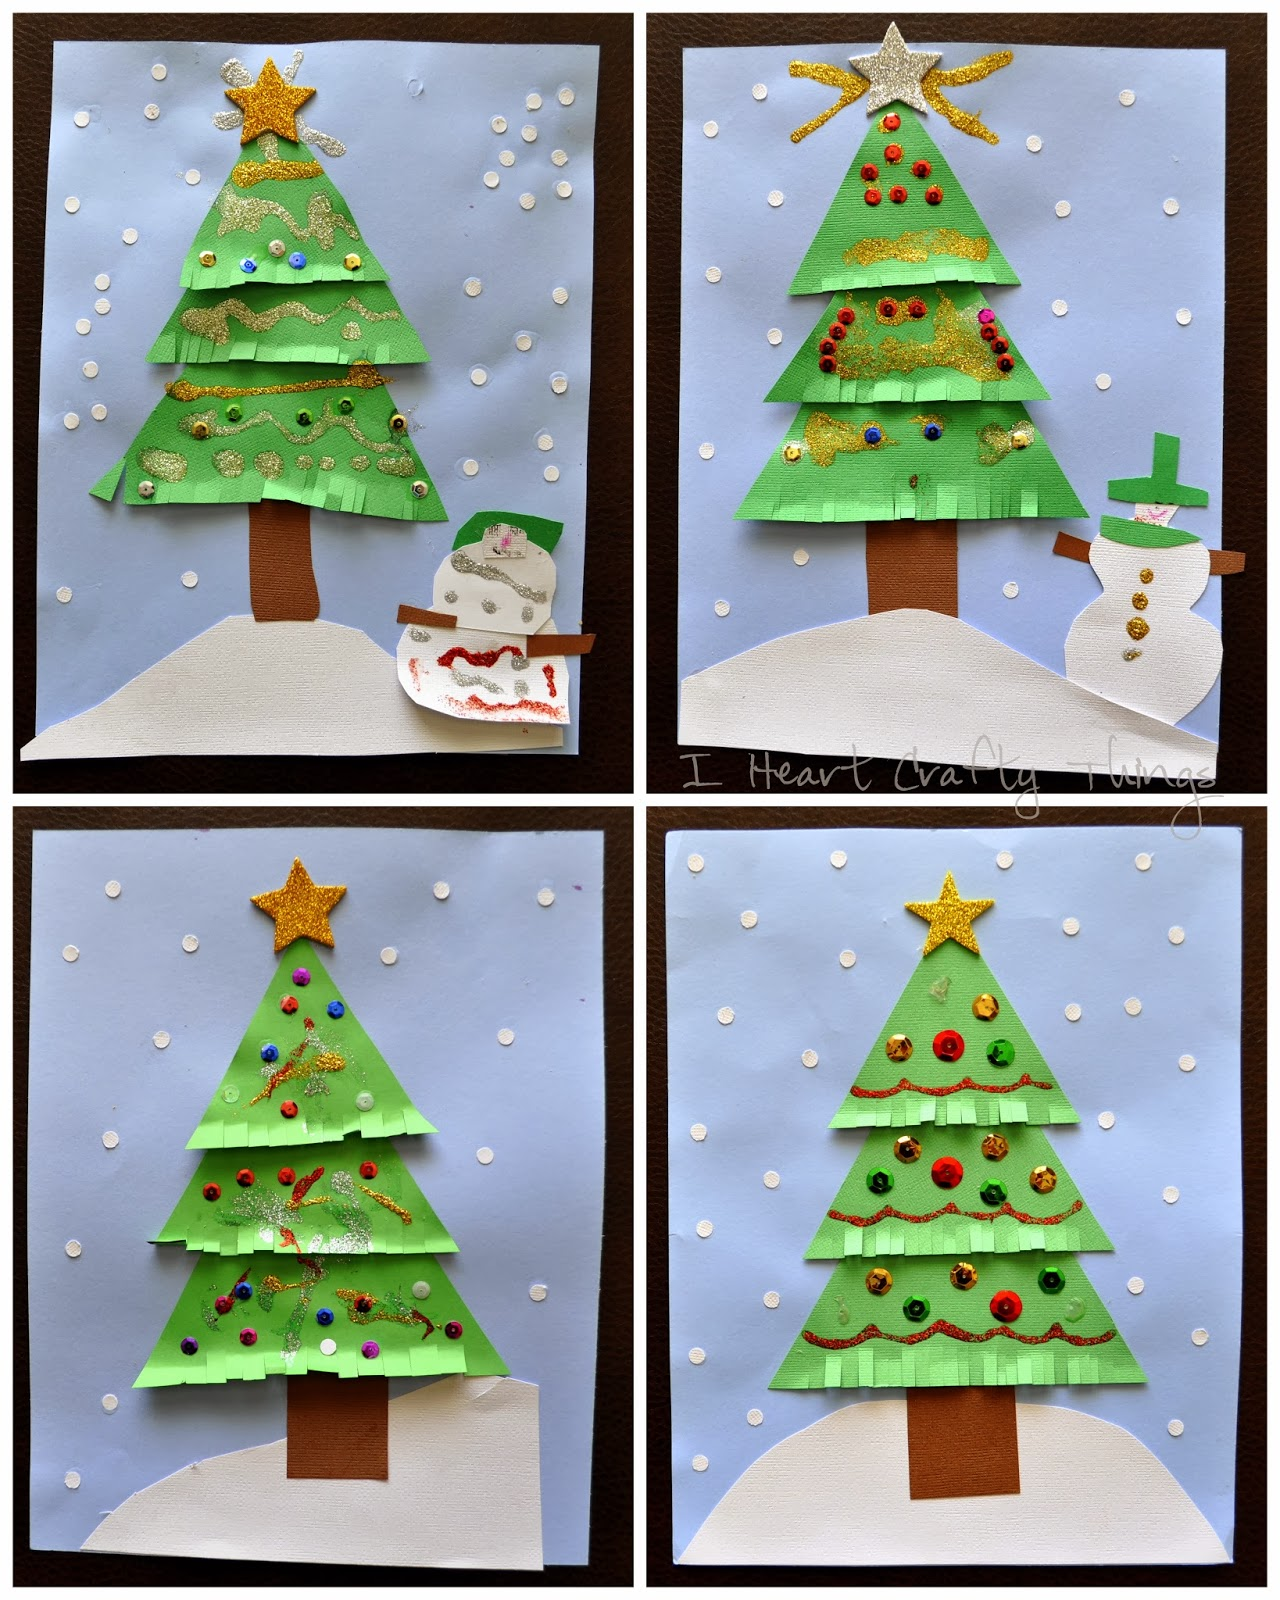 Christmas Crafts To Make: I Heart Crafty Things